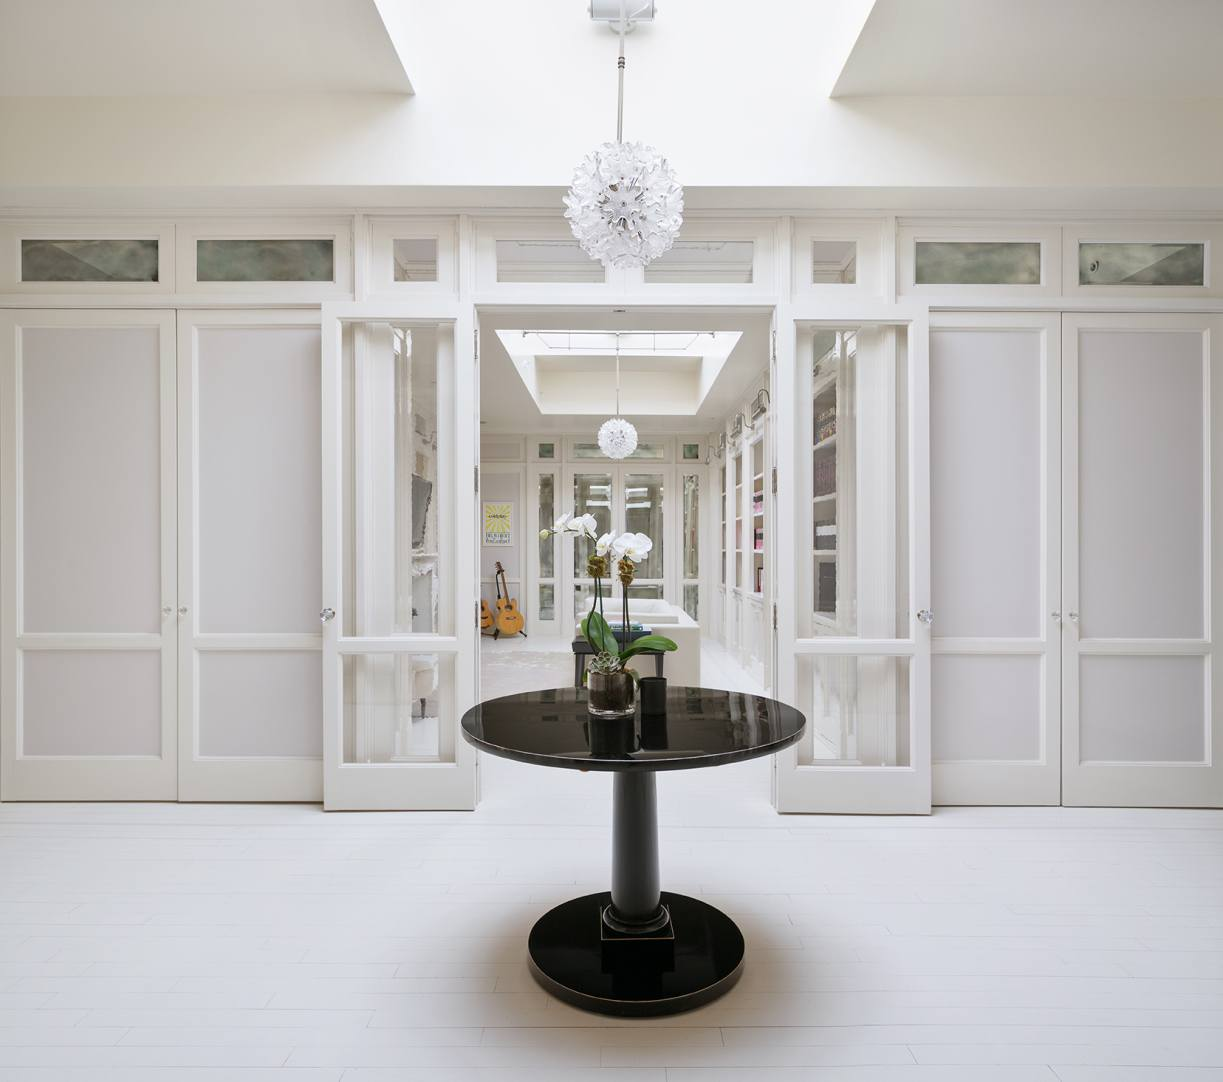 10 Light Street Apartments: Gwyneth Paltrow's All-white Tribeca Penthouse Gets $3M